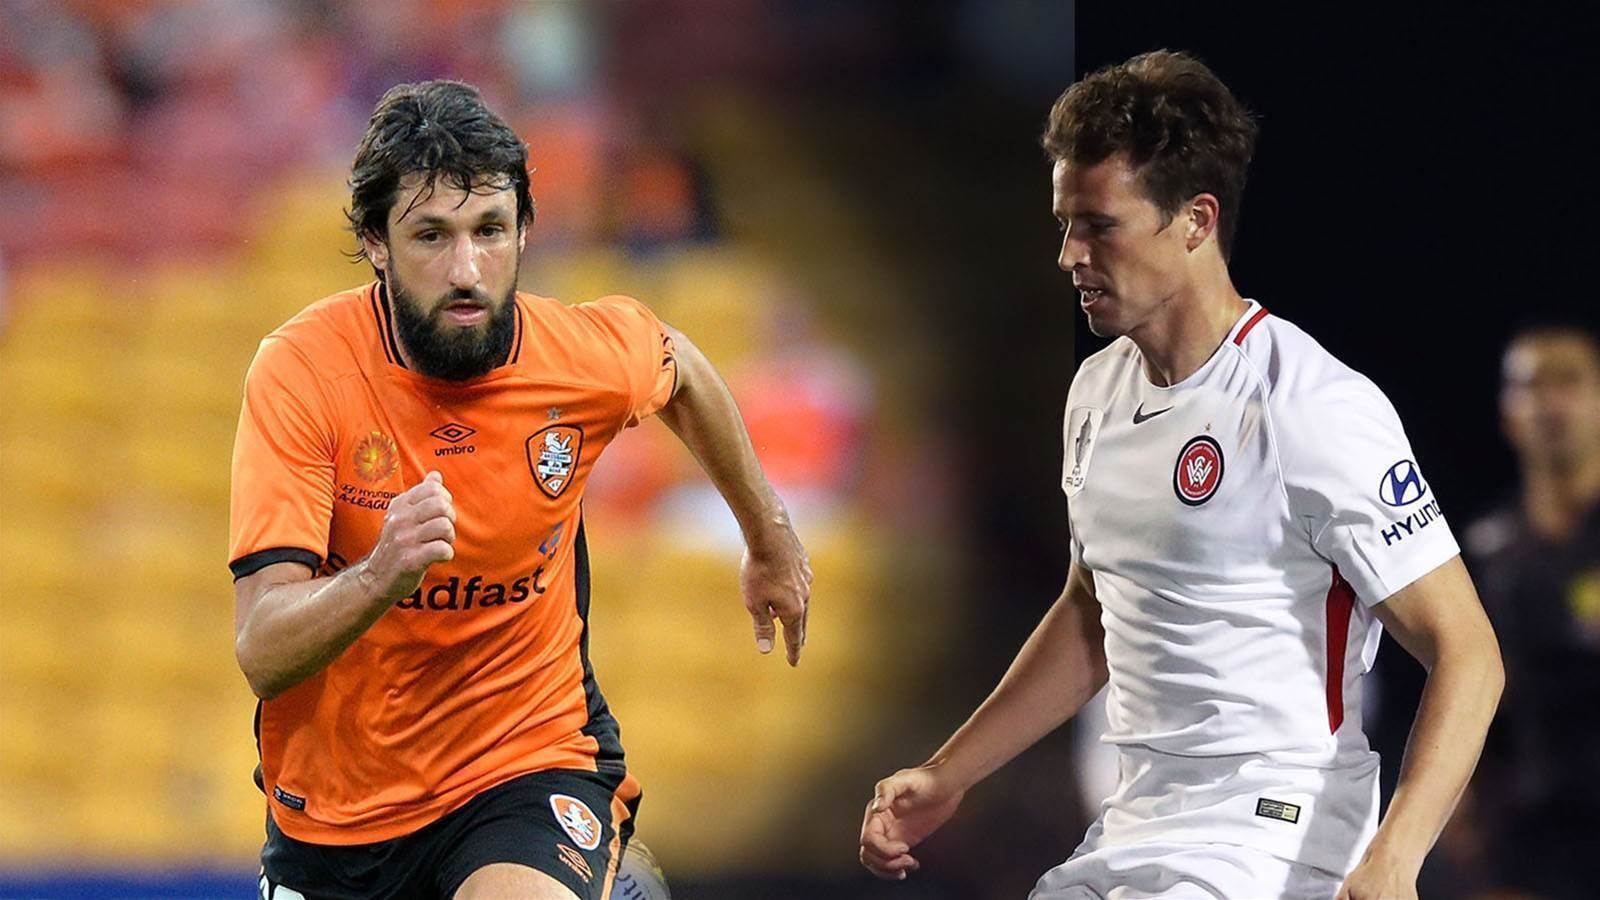 Broich doco inspired Ziegler move